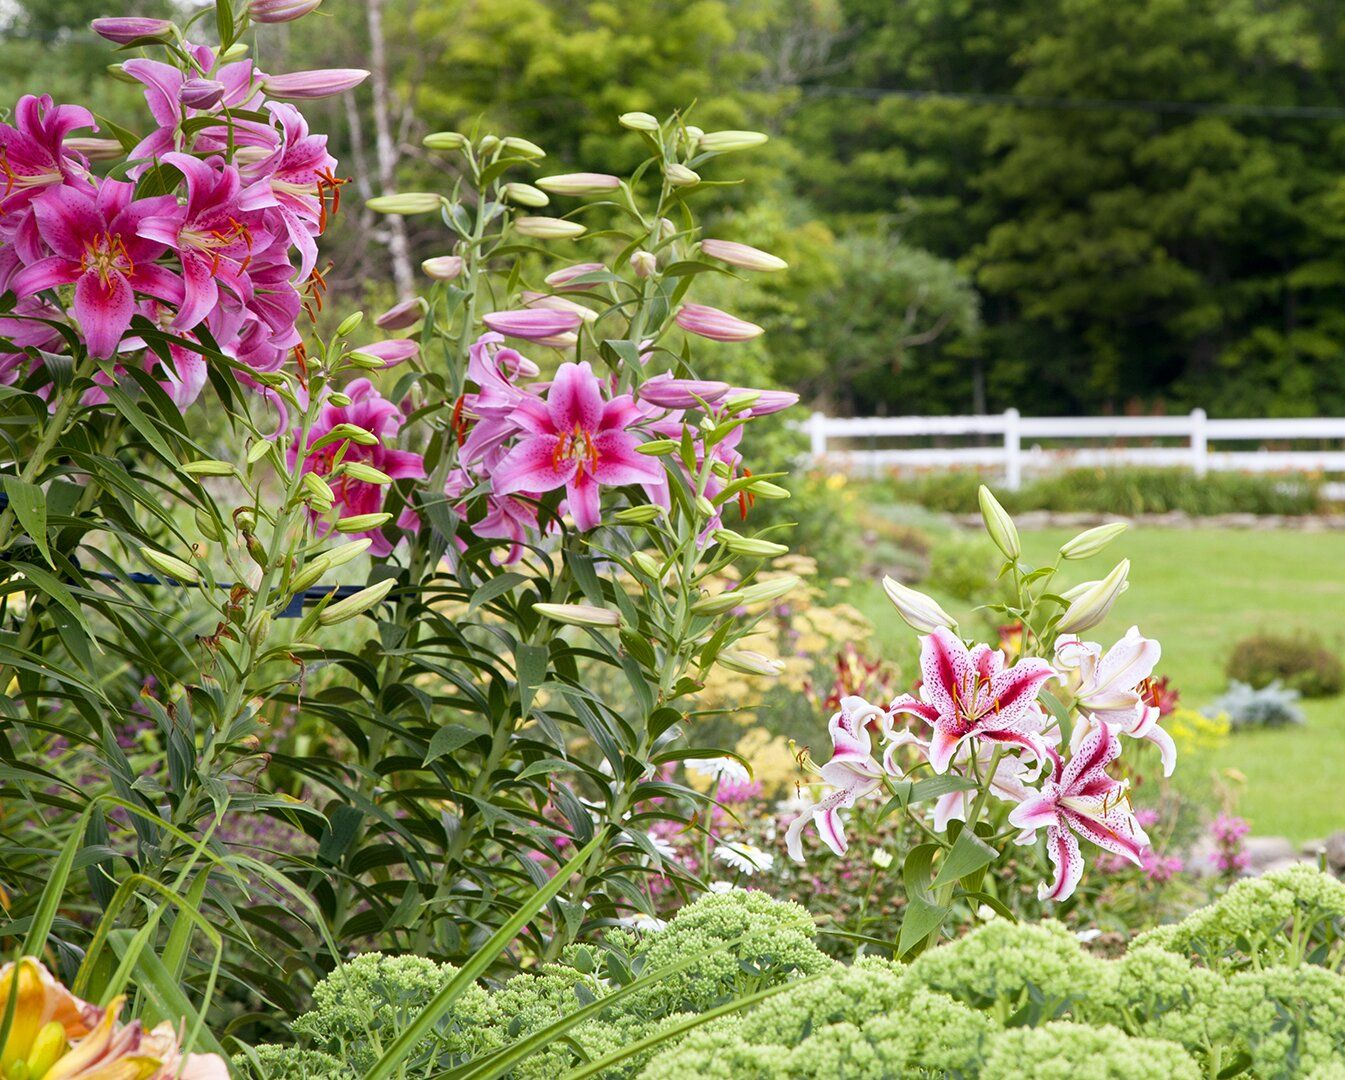 Photo of 19 Colorful Perennials You Need to Have in Your Cutting Garden